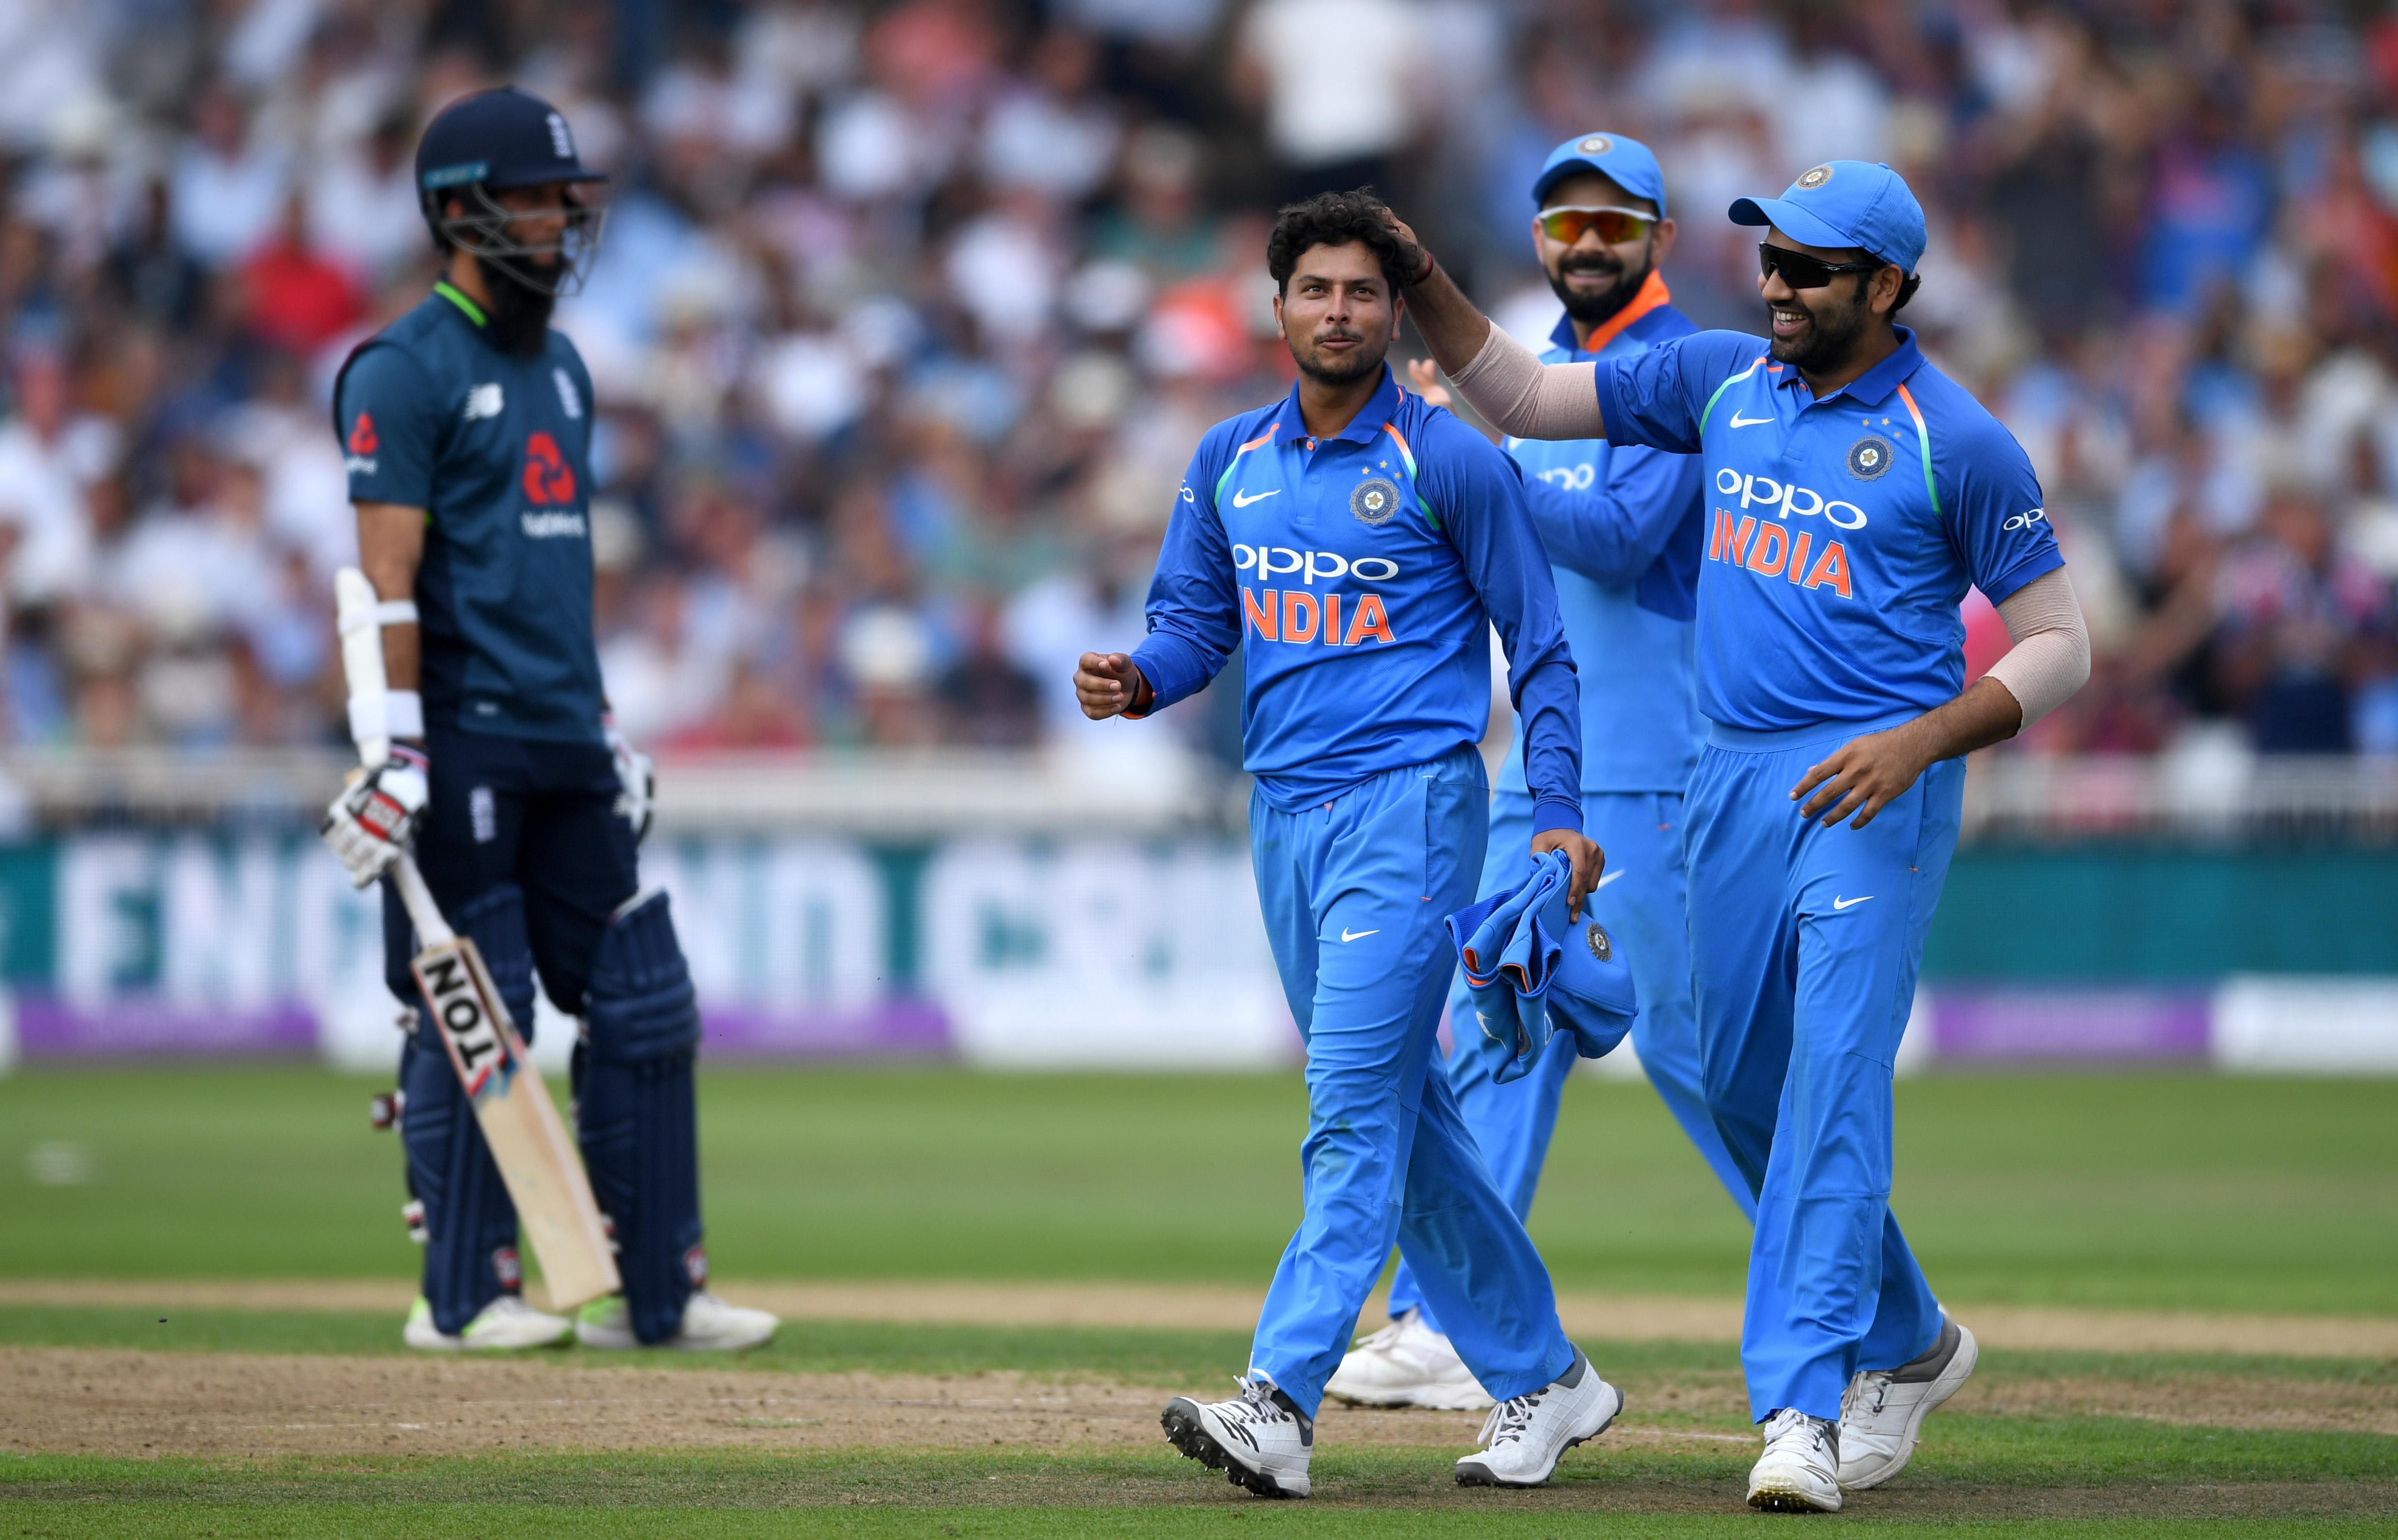 India were brilliant in Trent Bridge and now lead the 3-match series 1-0.